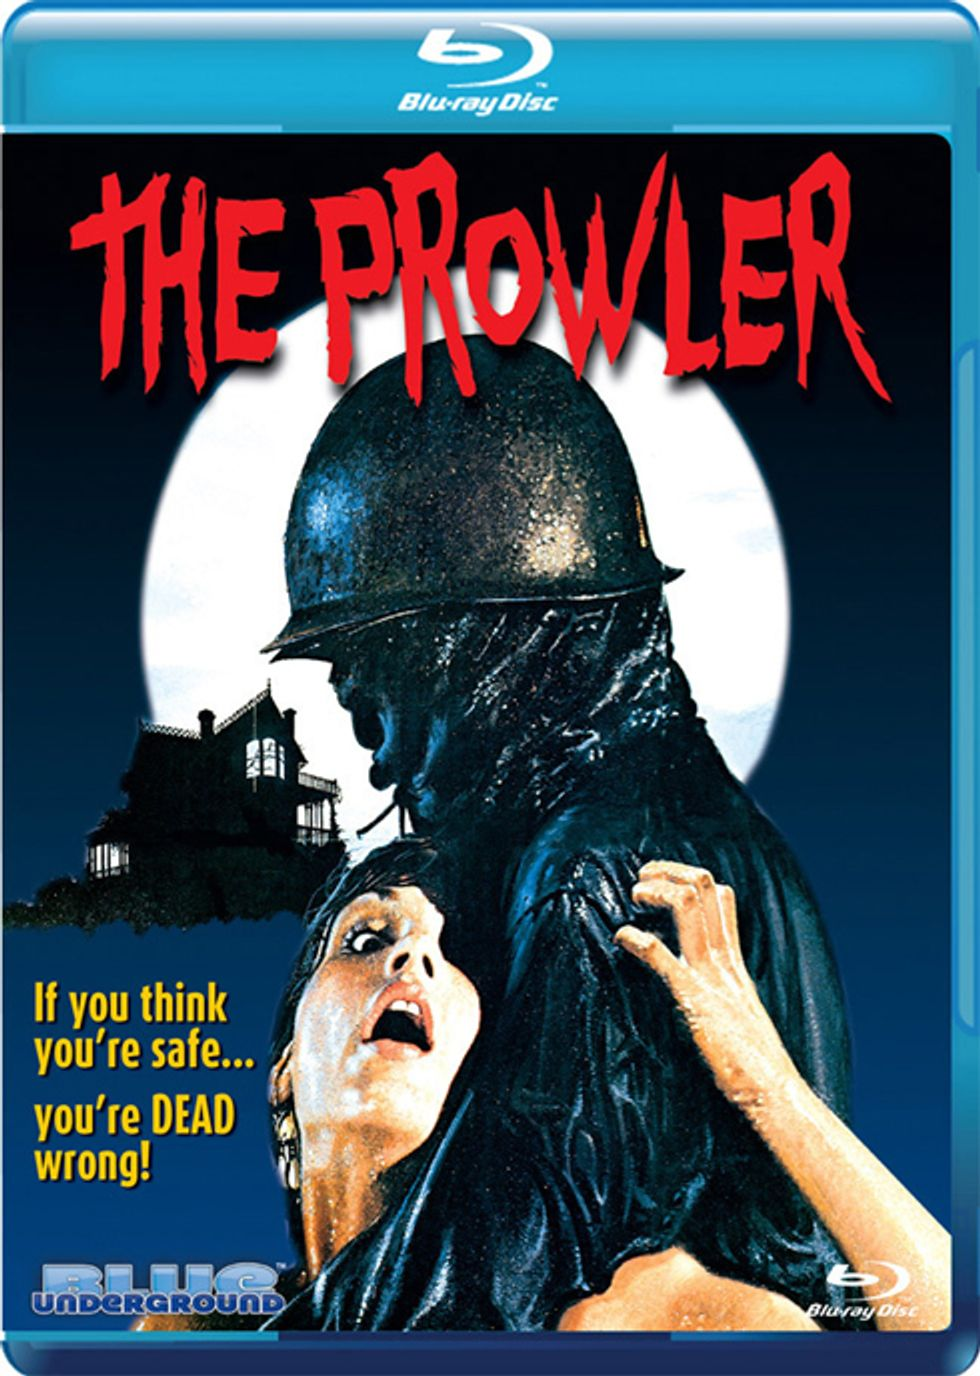 The Prowler On Blu-ray!